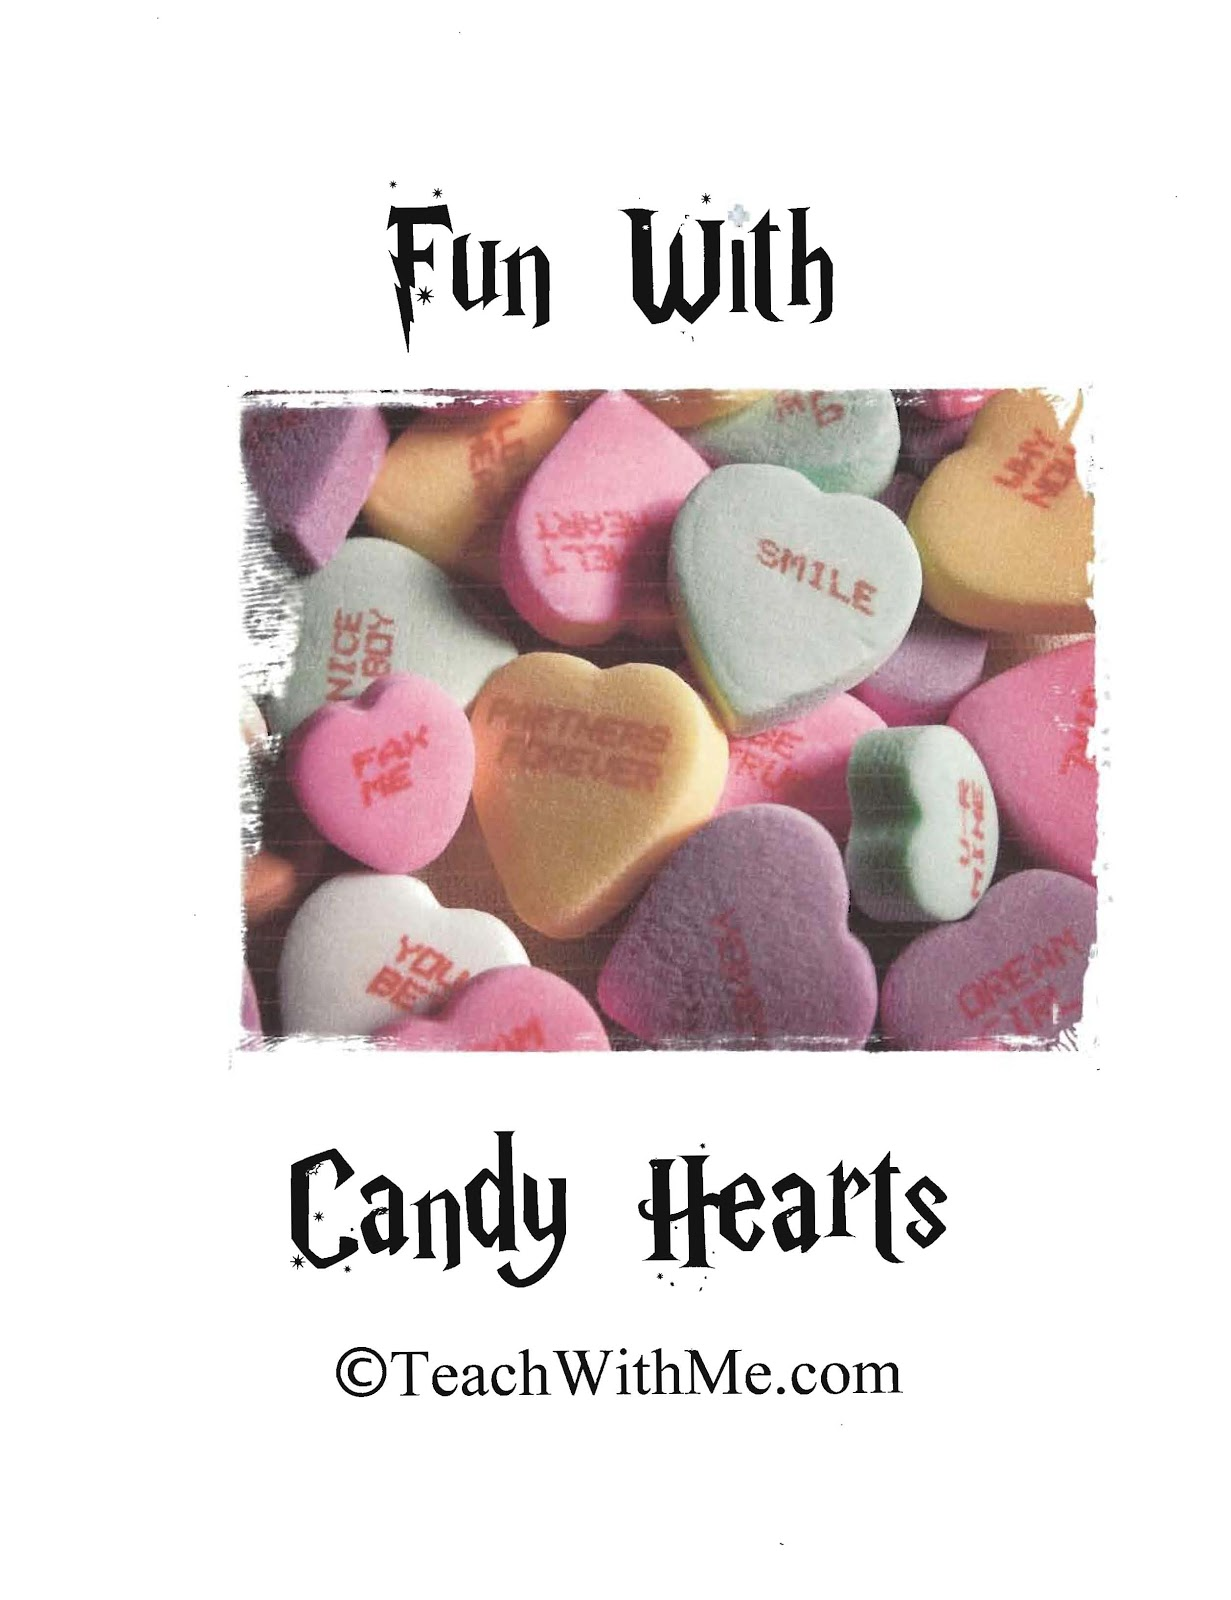 Fun With Candy Hearts